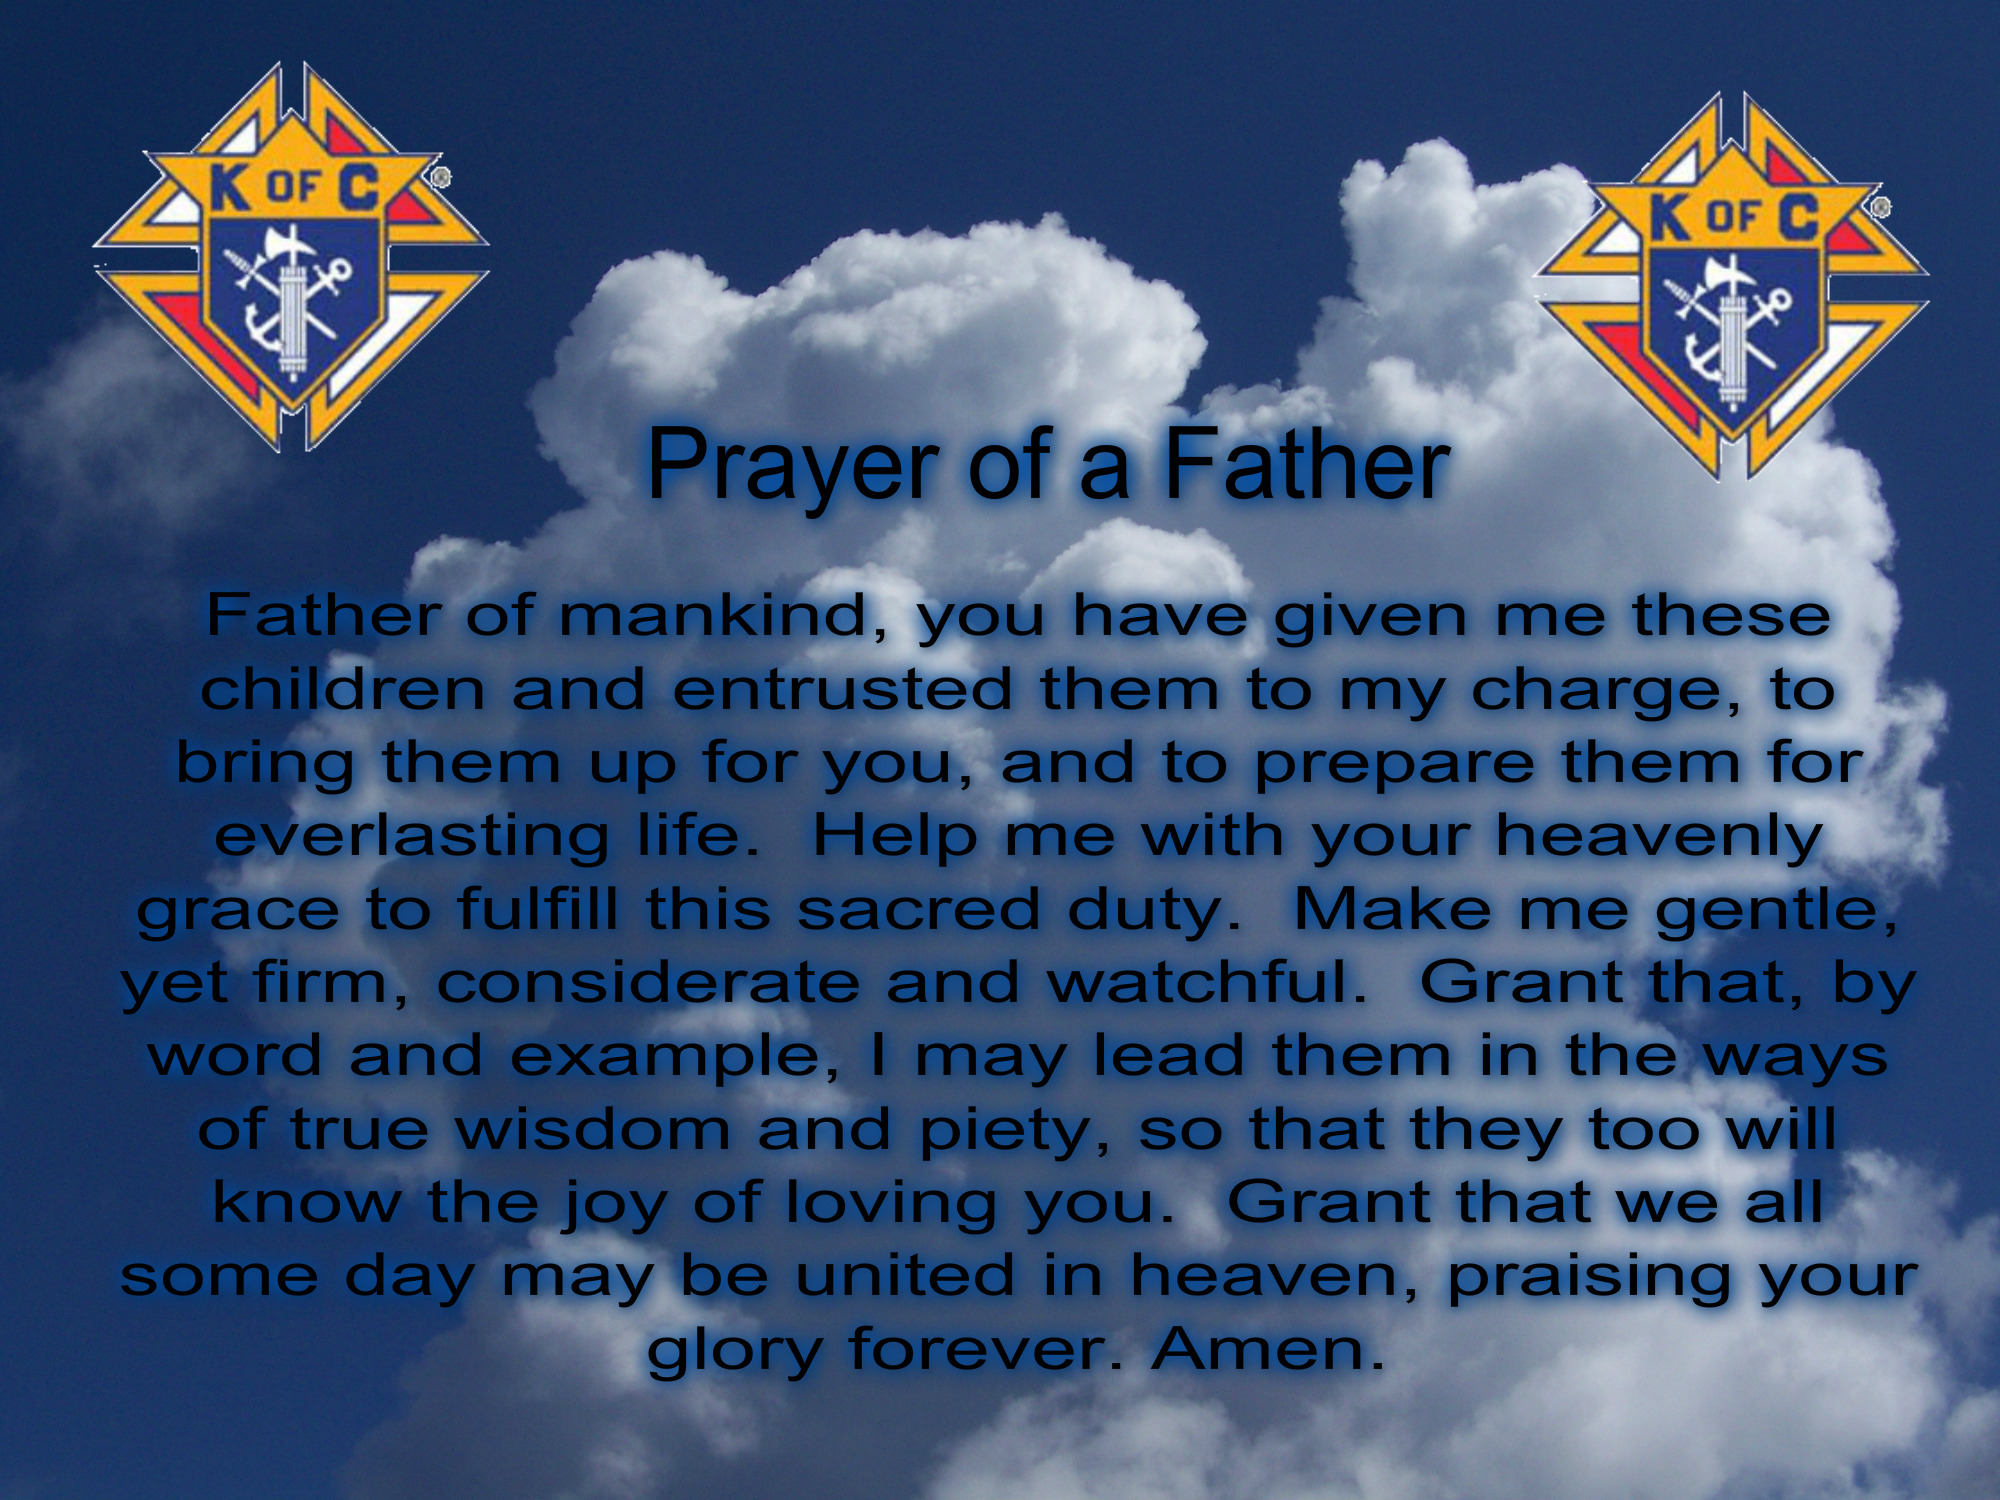 Prayer of a Father